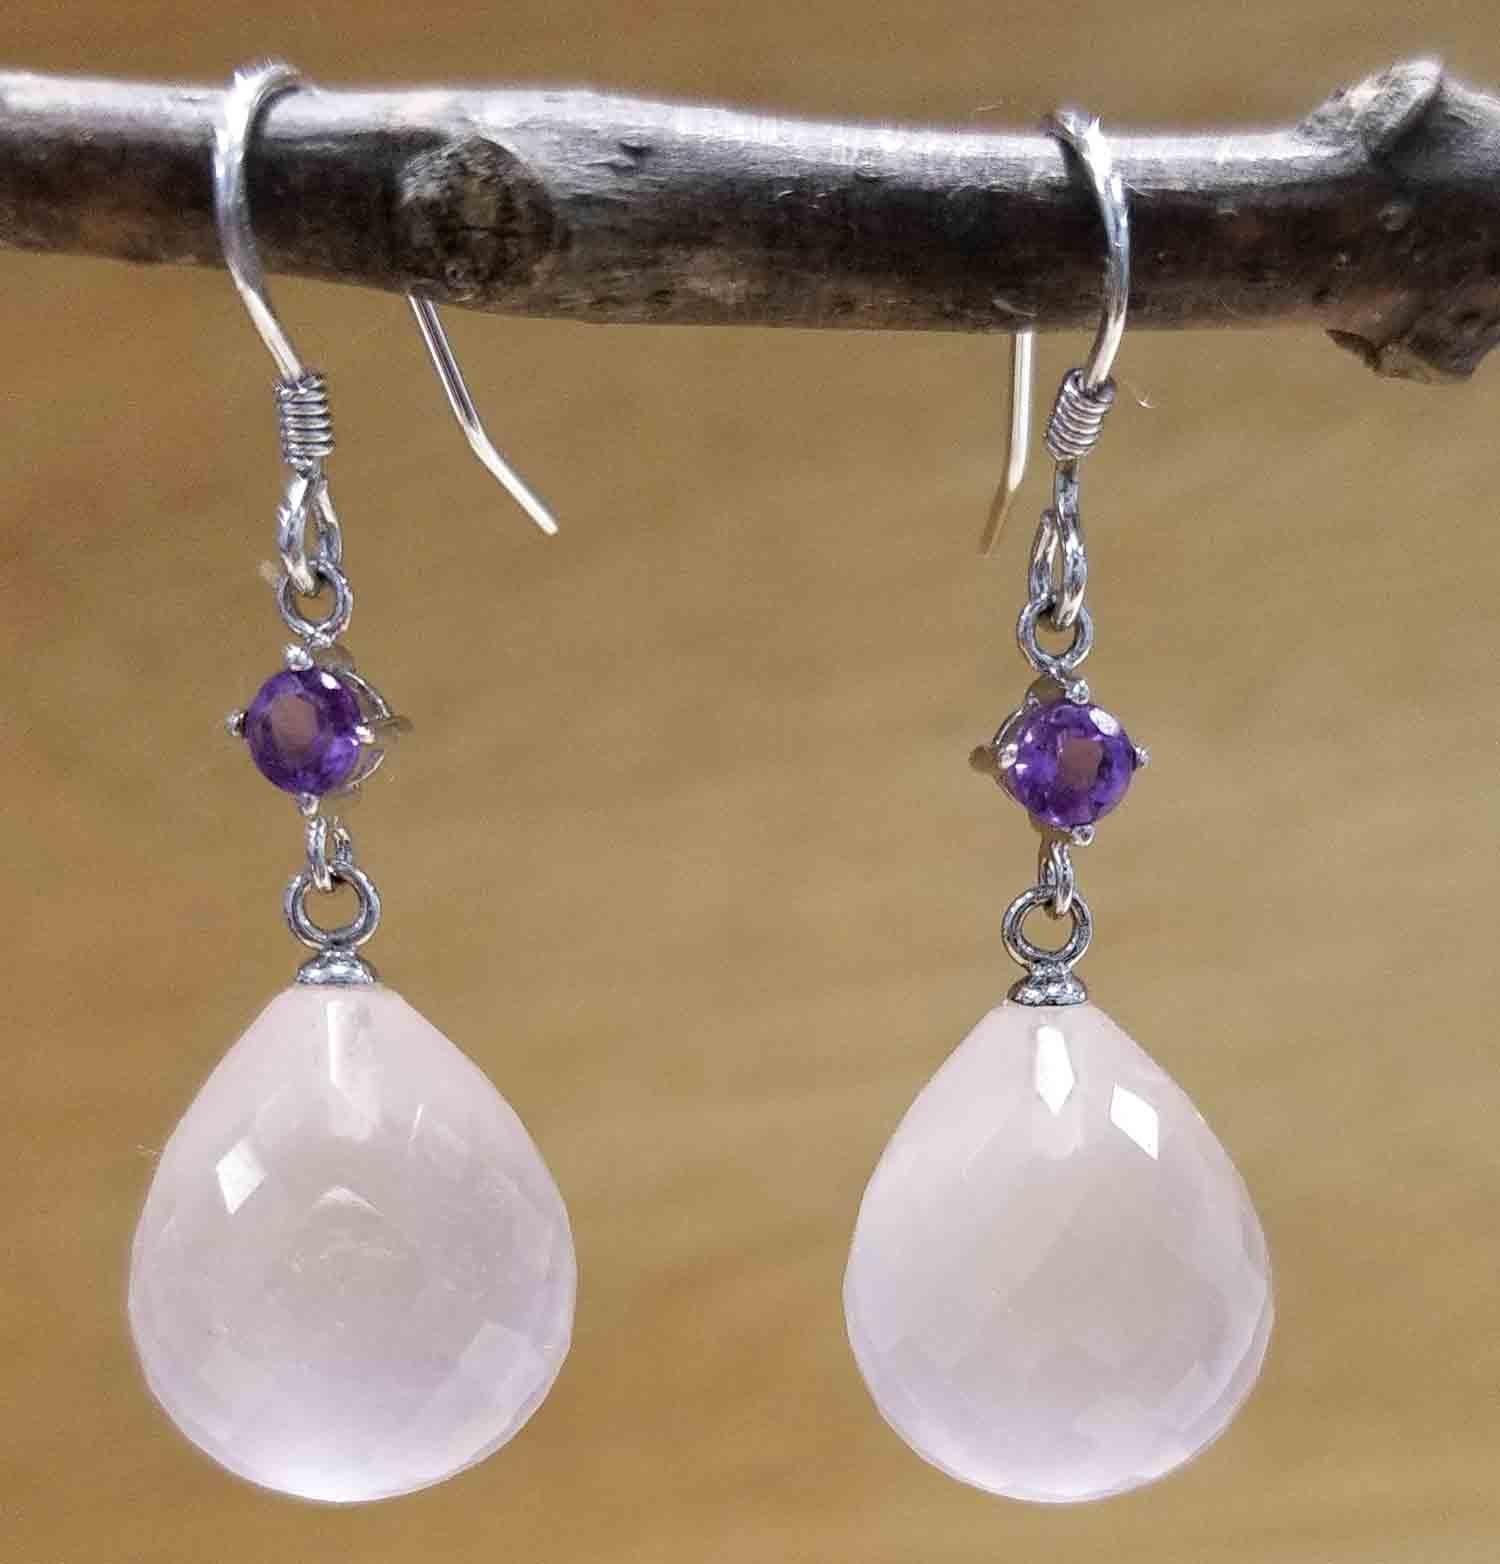 Amethyst and faceted rose quartz drop earrings